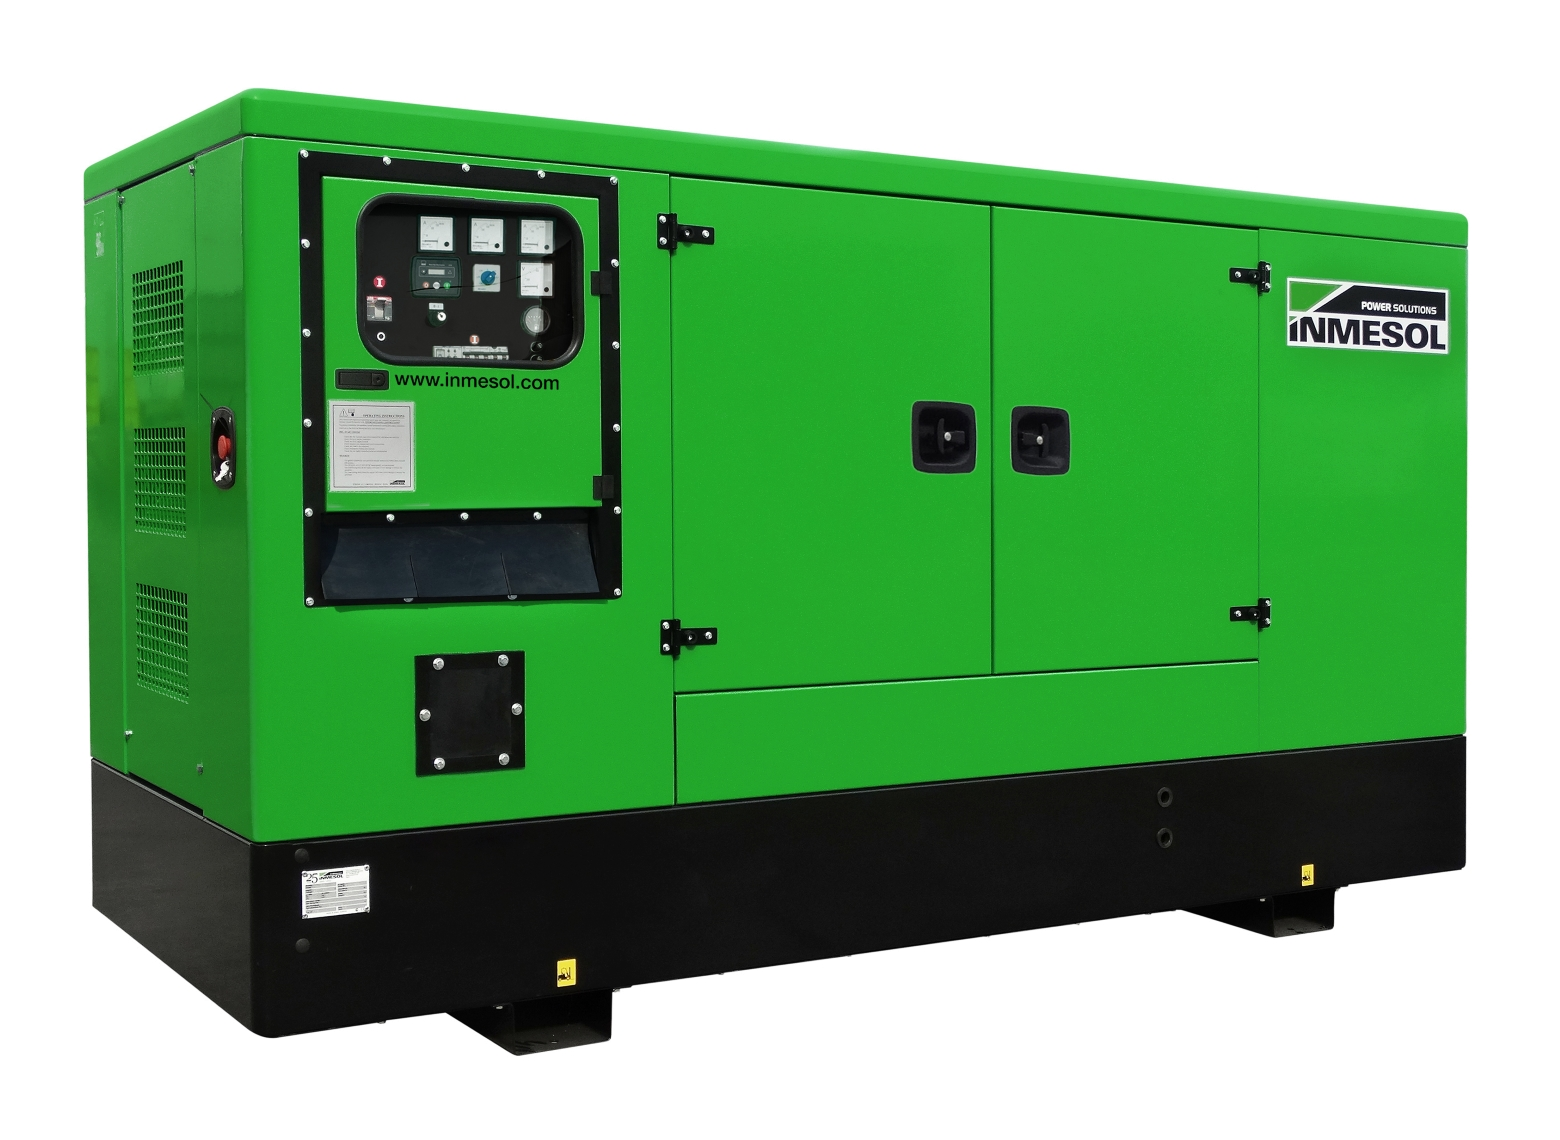 Generator with manual control panel.ID-145 - DEUTZ - BF4M1013FC - 1.500 R.P.M. | 50 Hz